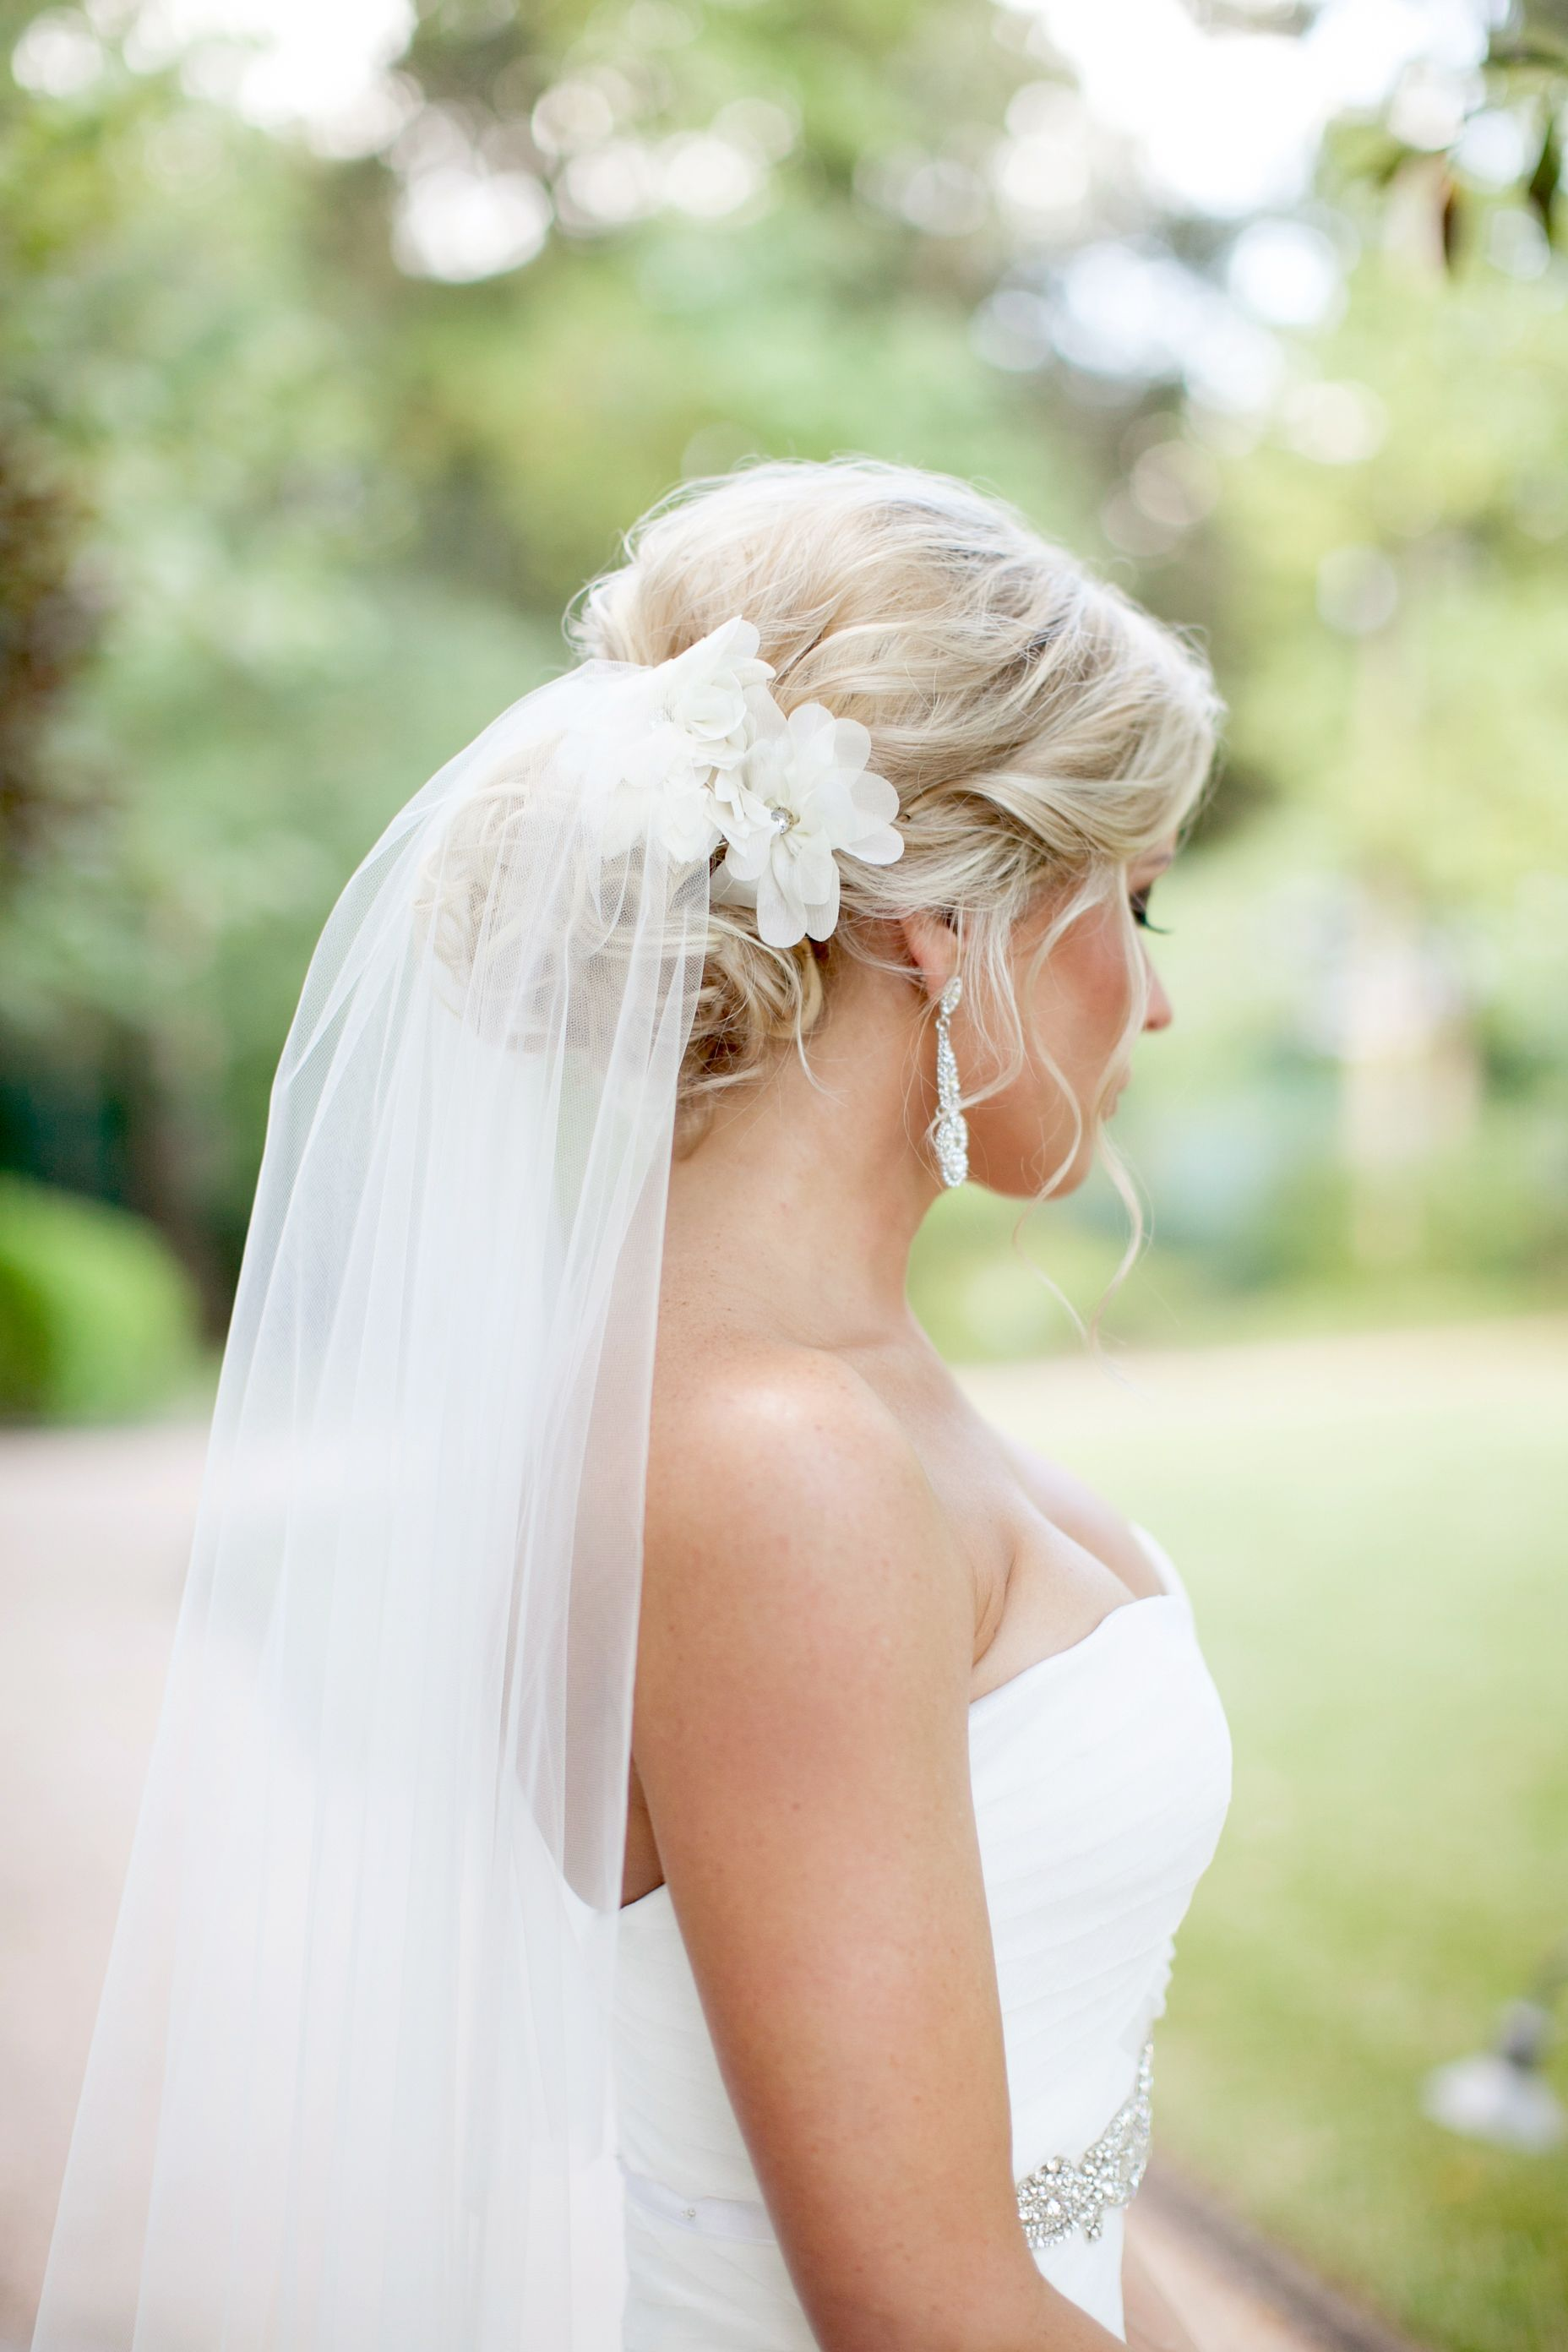 50+ romantic bridal photos | pic ideas | wedding hairstyles